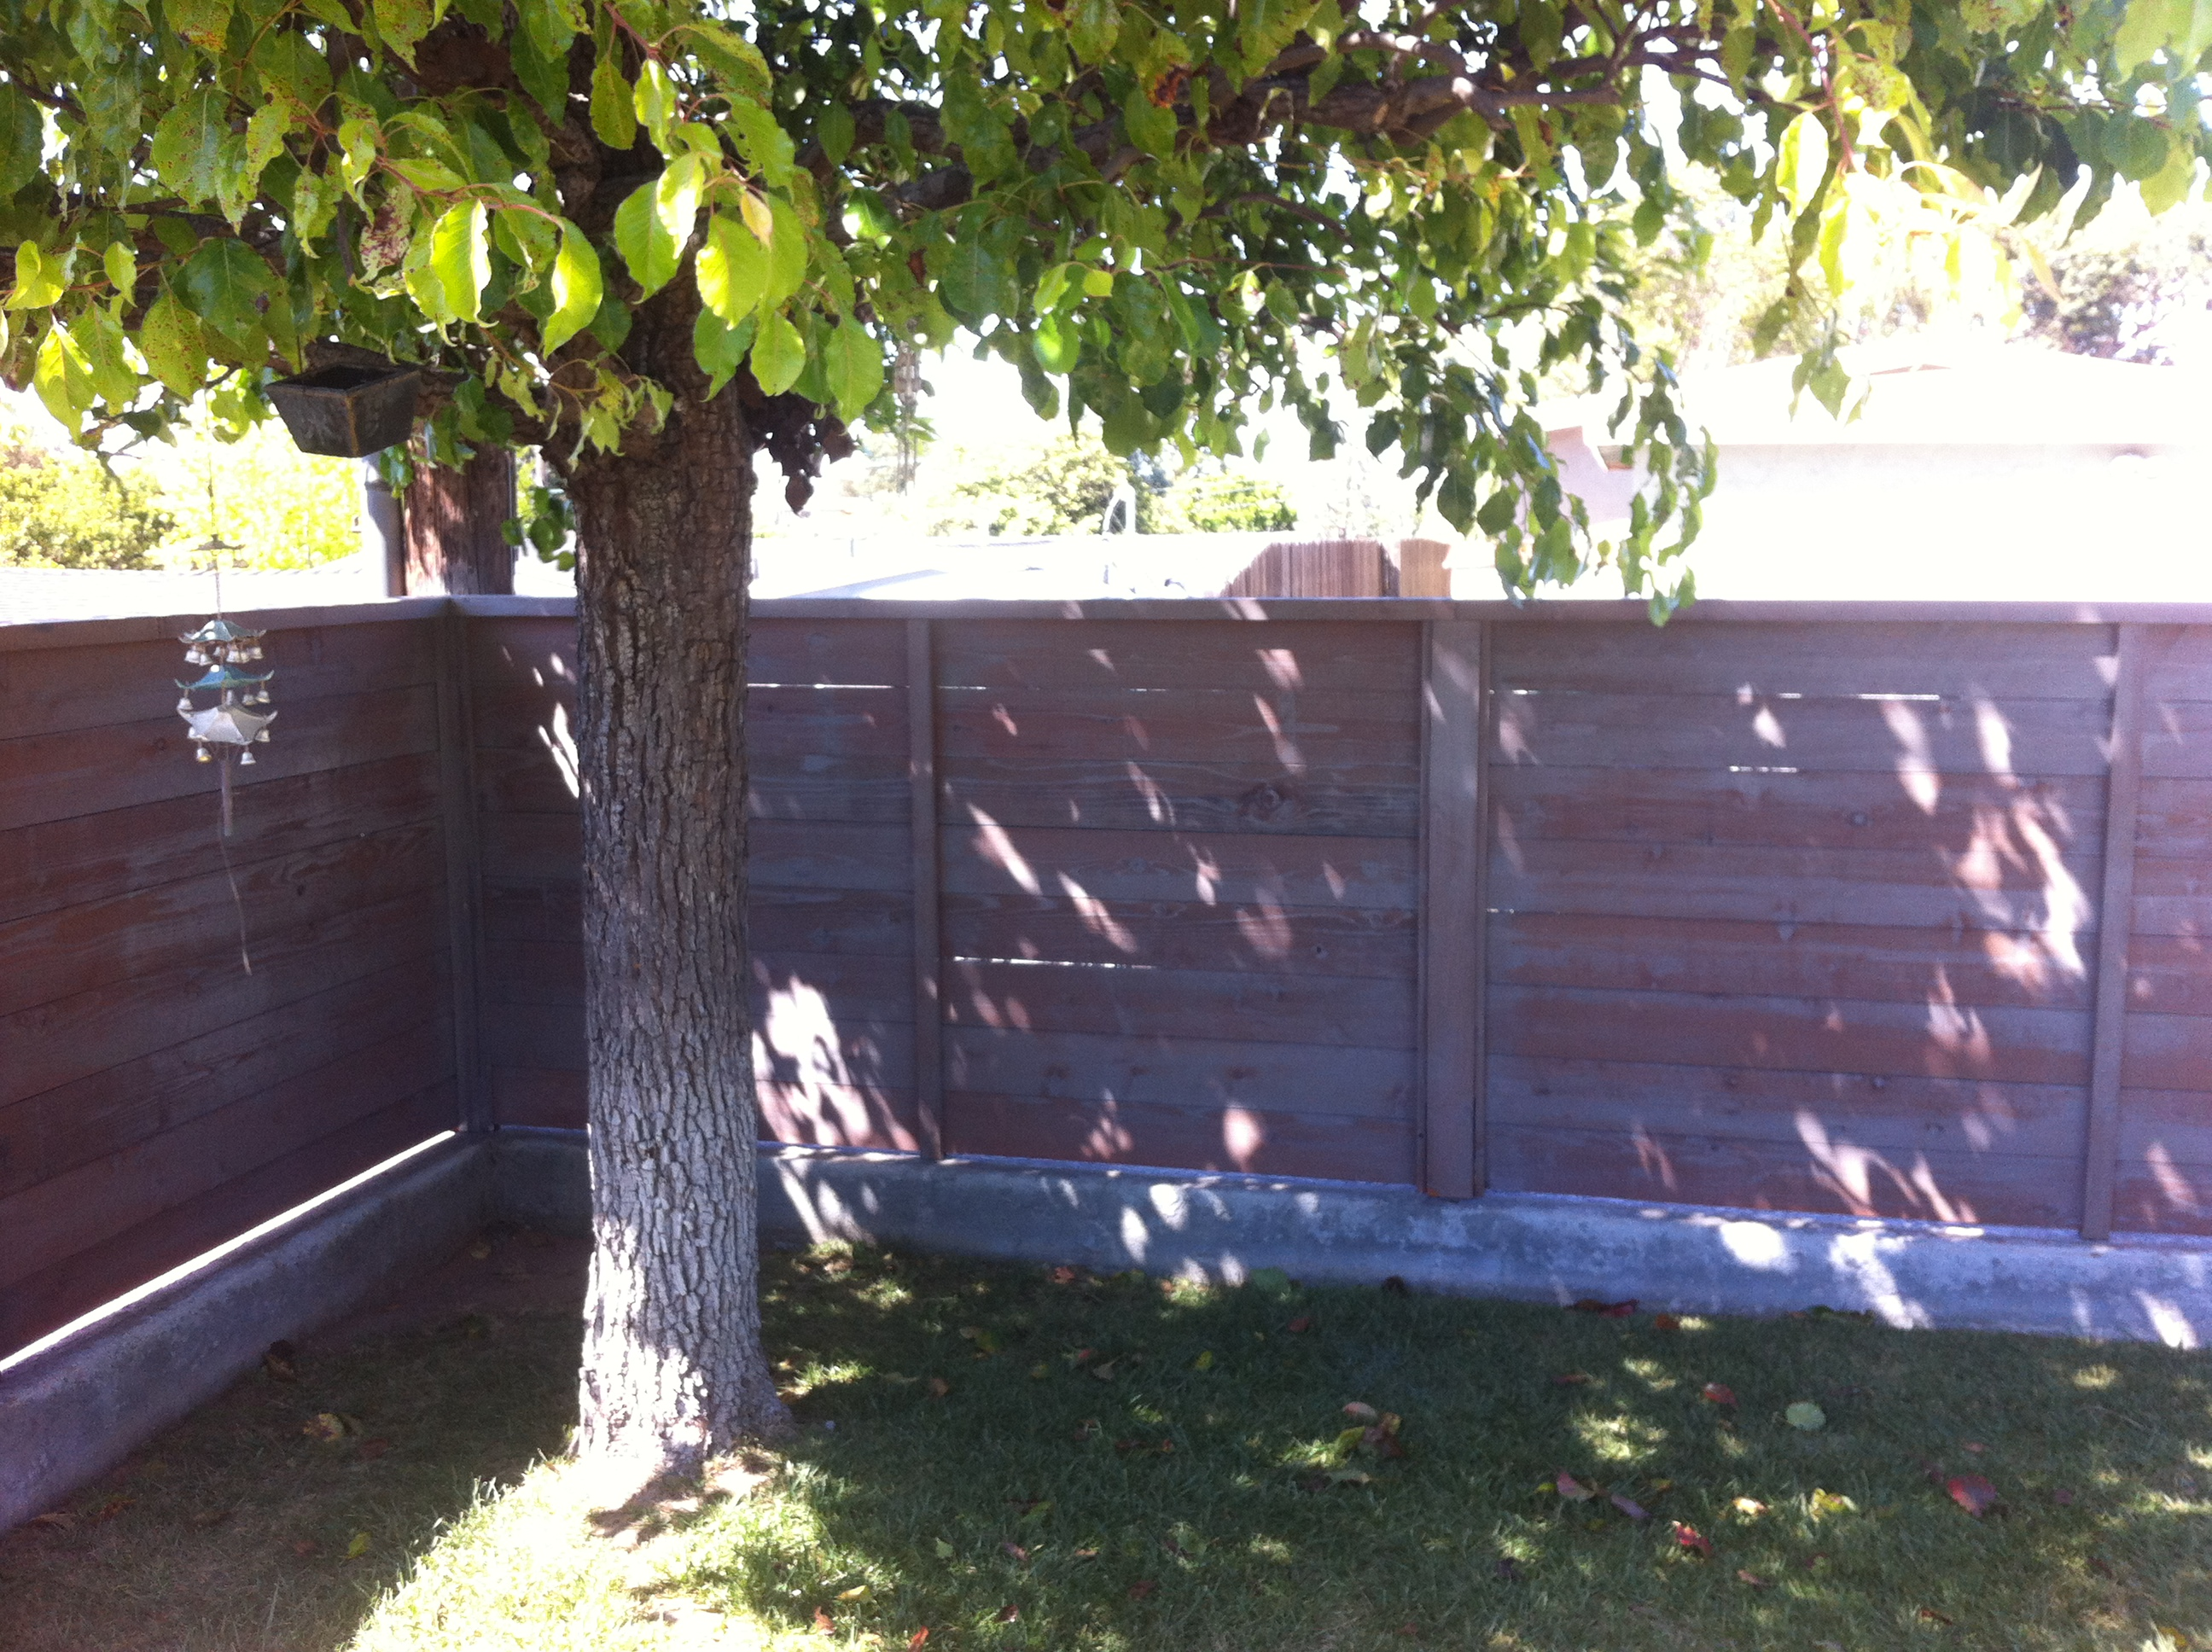 Heart redwood horizontal style fence (stained)